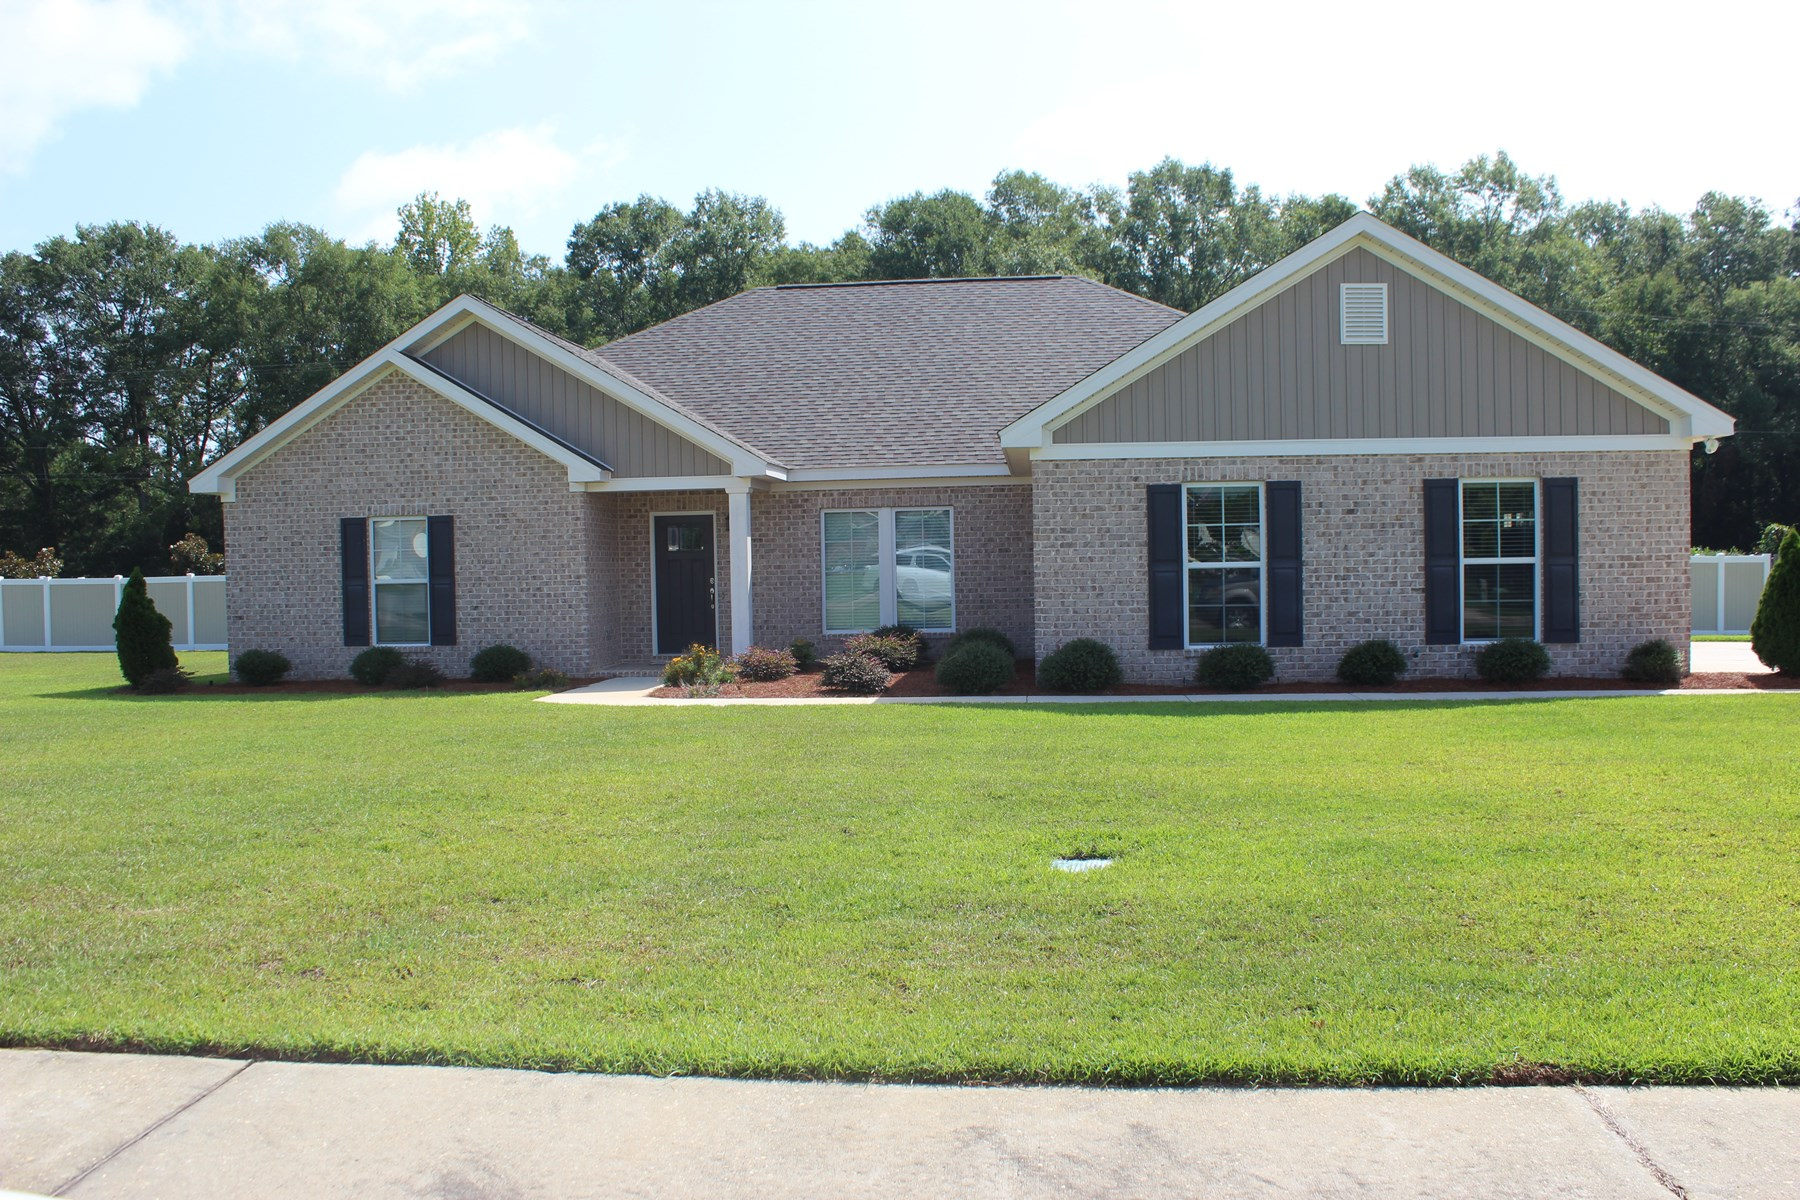 Country Home For Sale Dothan, Alabama